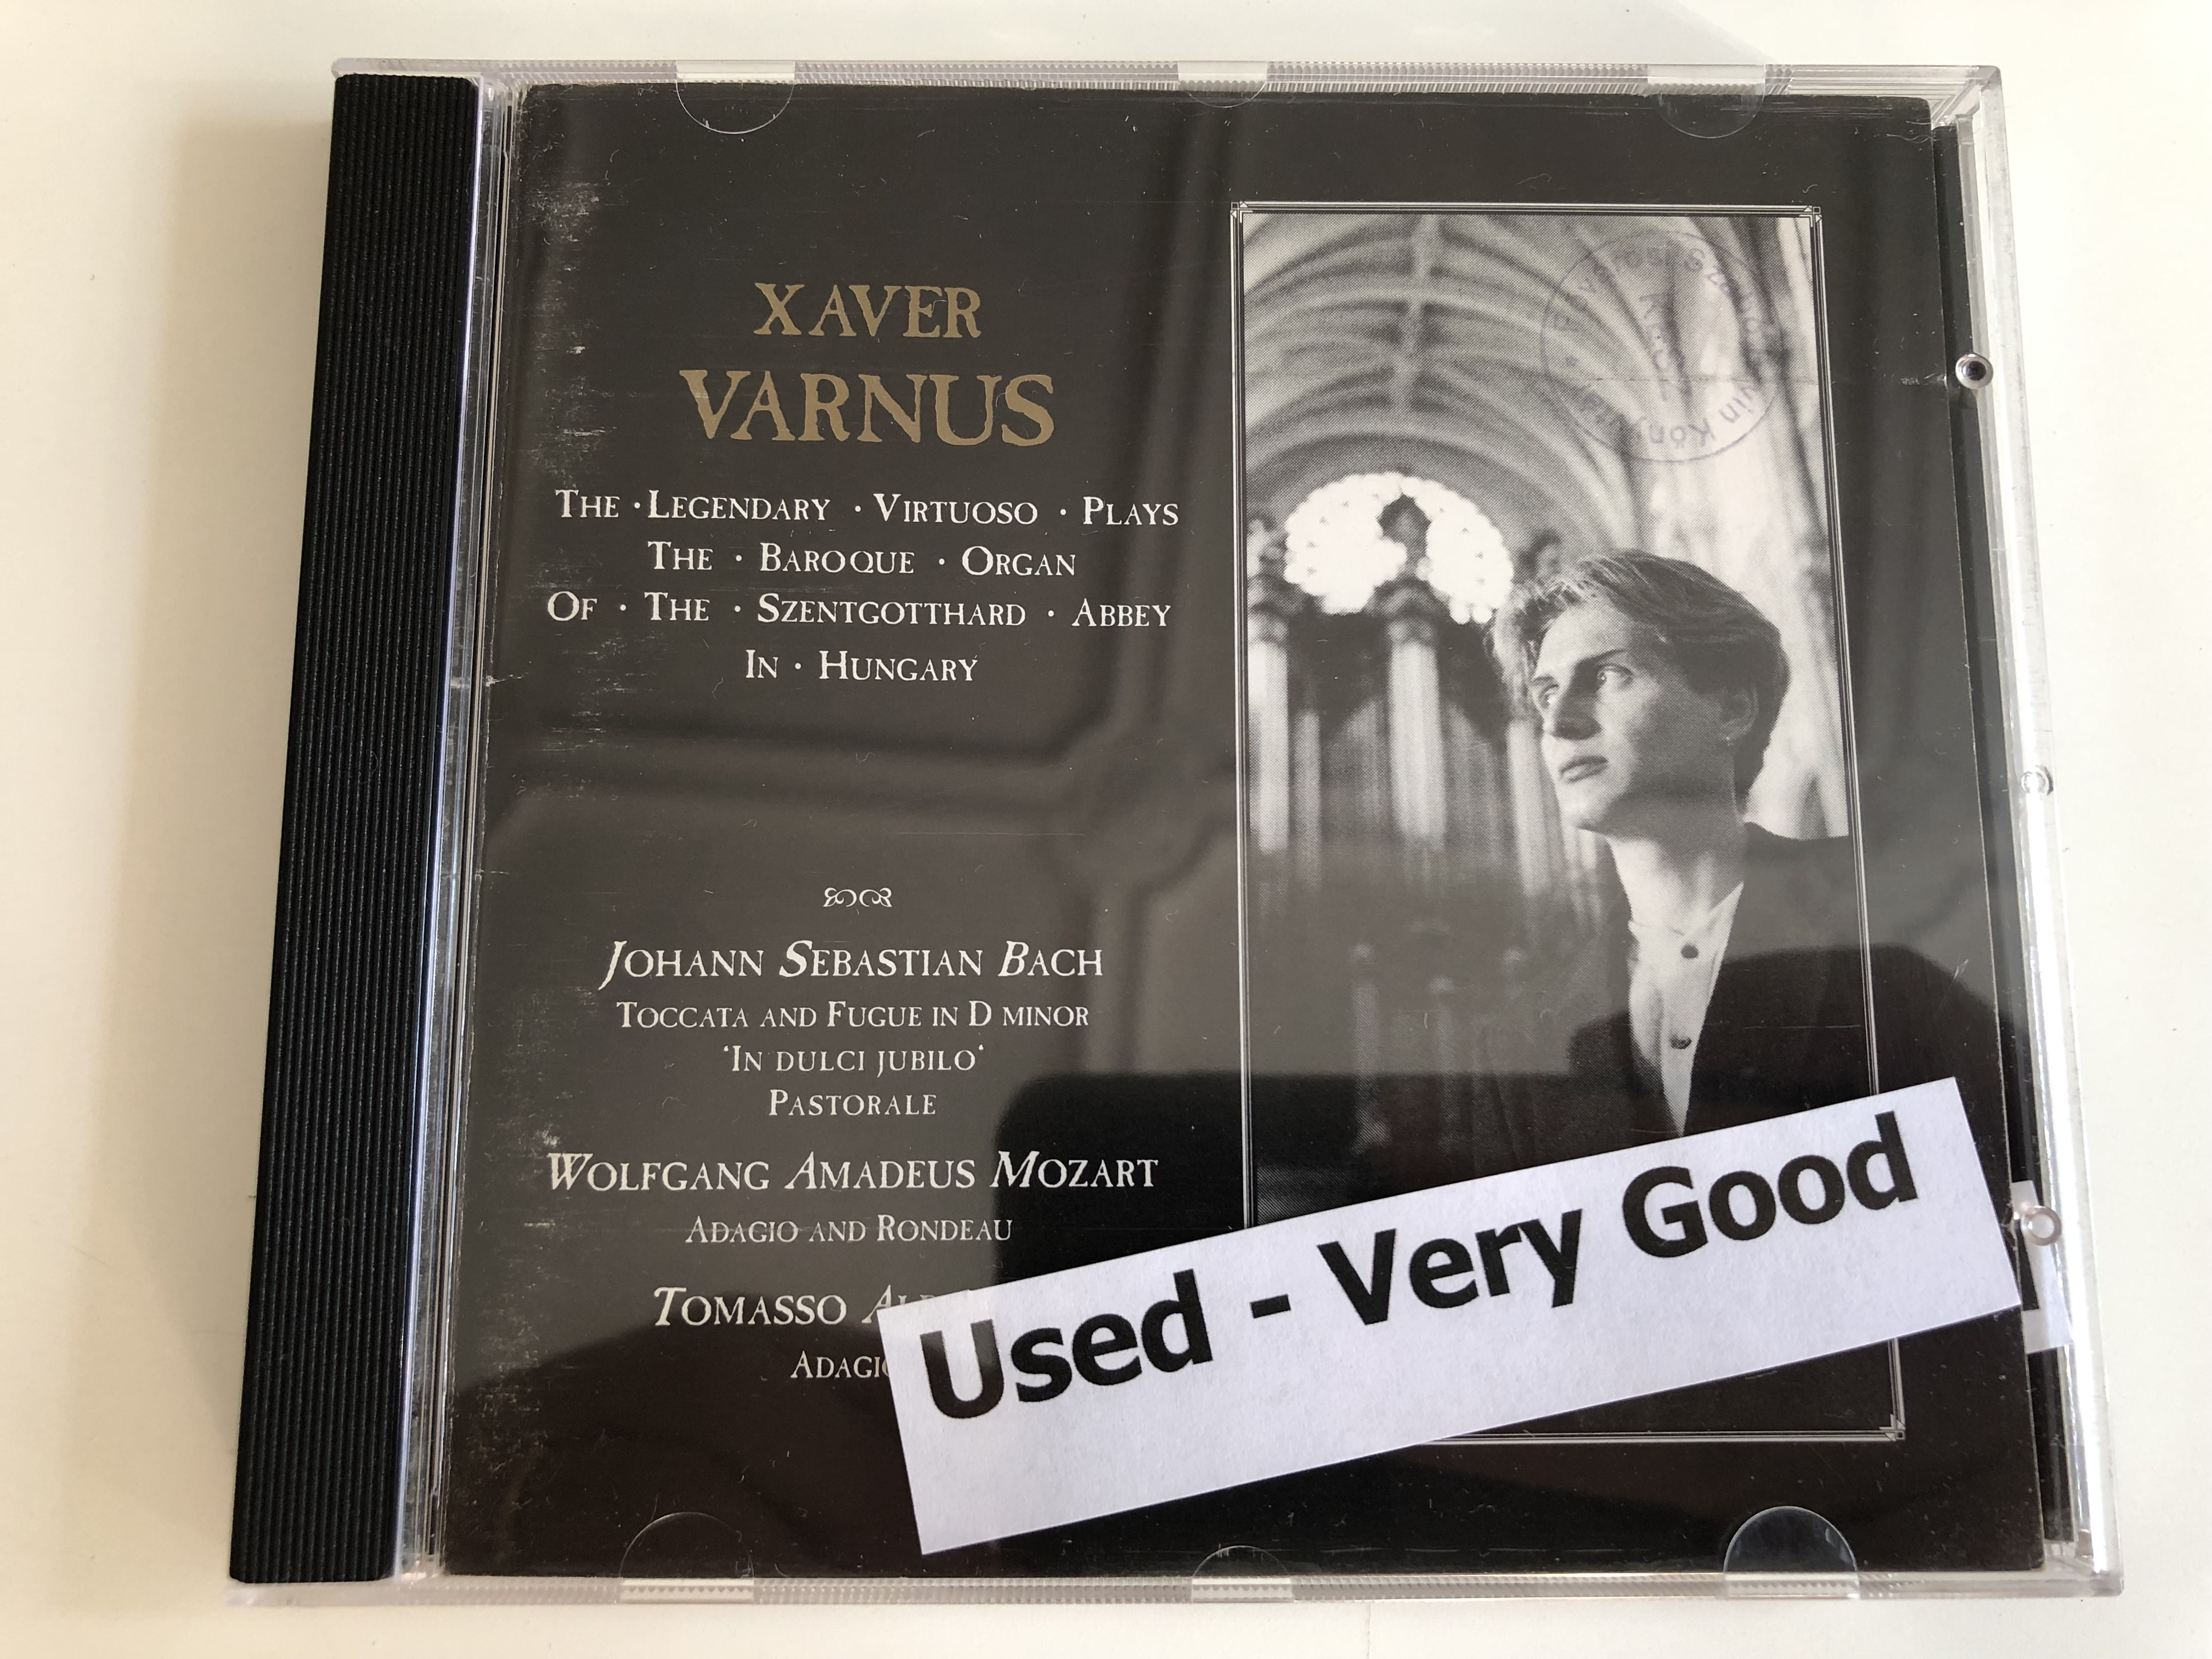 bach-mozart-albinoni-xaver-varnus-the-legendary-virtuoso-plays-the-baroque-organ-of-the-szentgotthard-abbey-in-hungary-audio-cd-acd-1436-1-.jpg